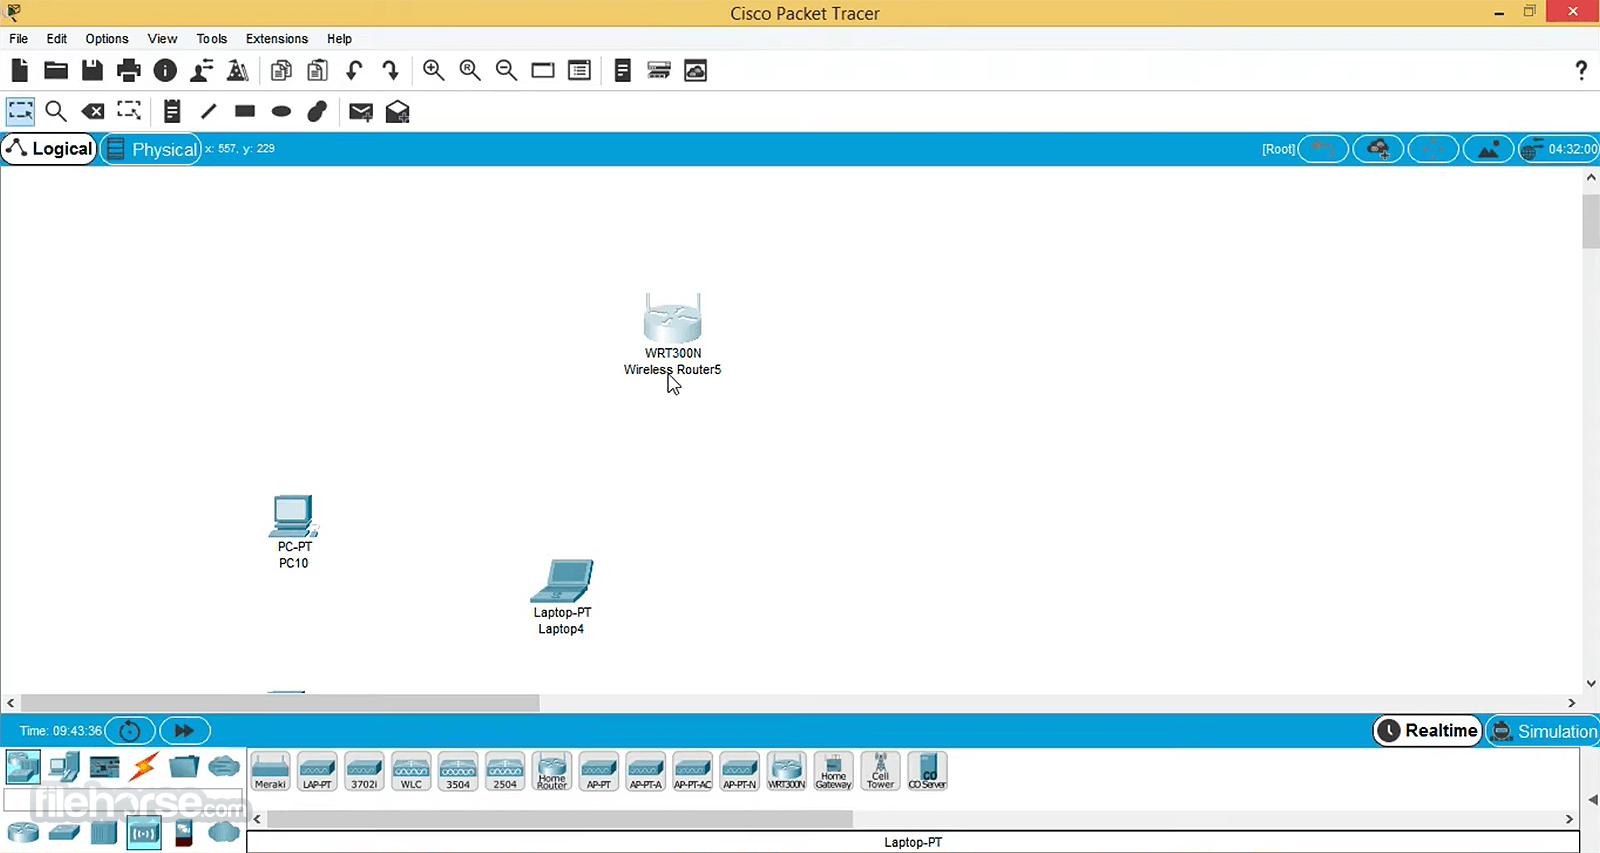 Cisco Packet Tracer 7.0 (32-bit) Captura de Pantalla 1